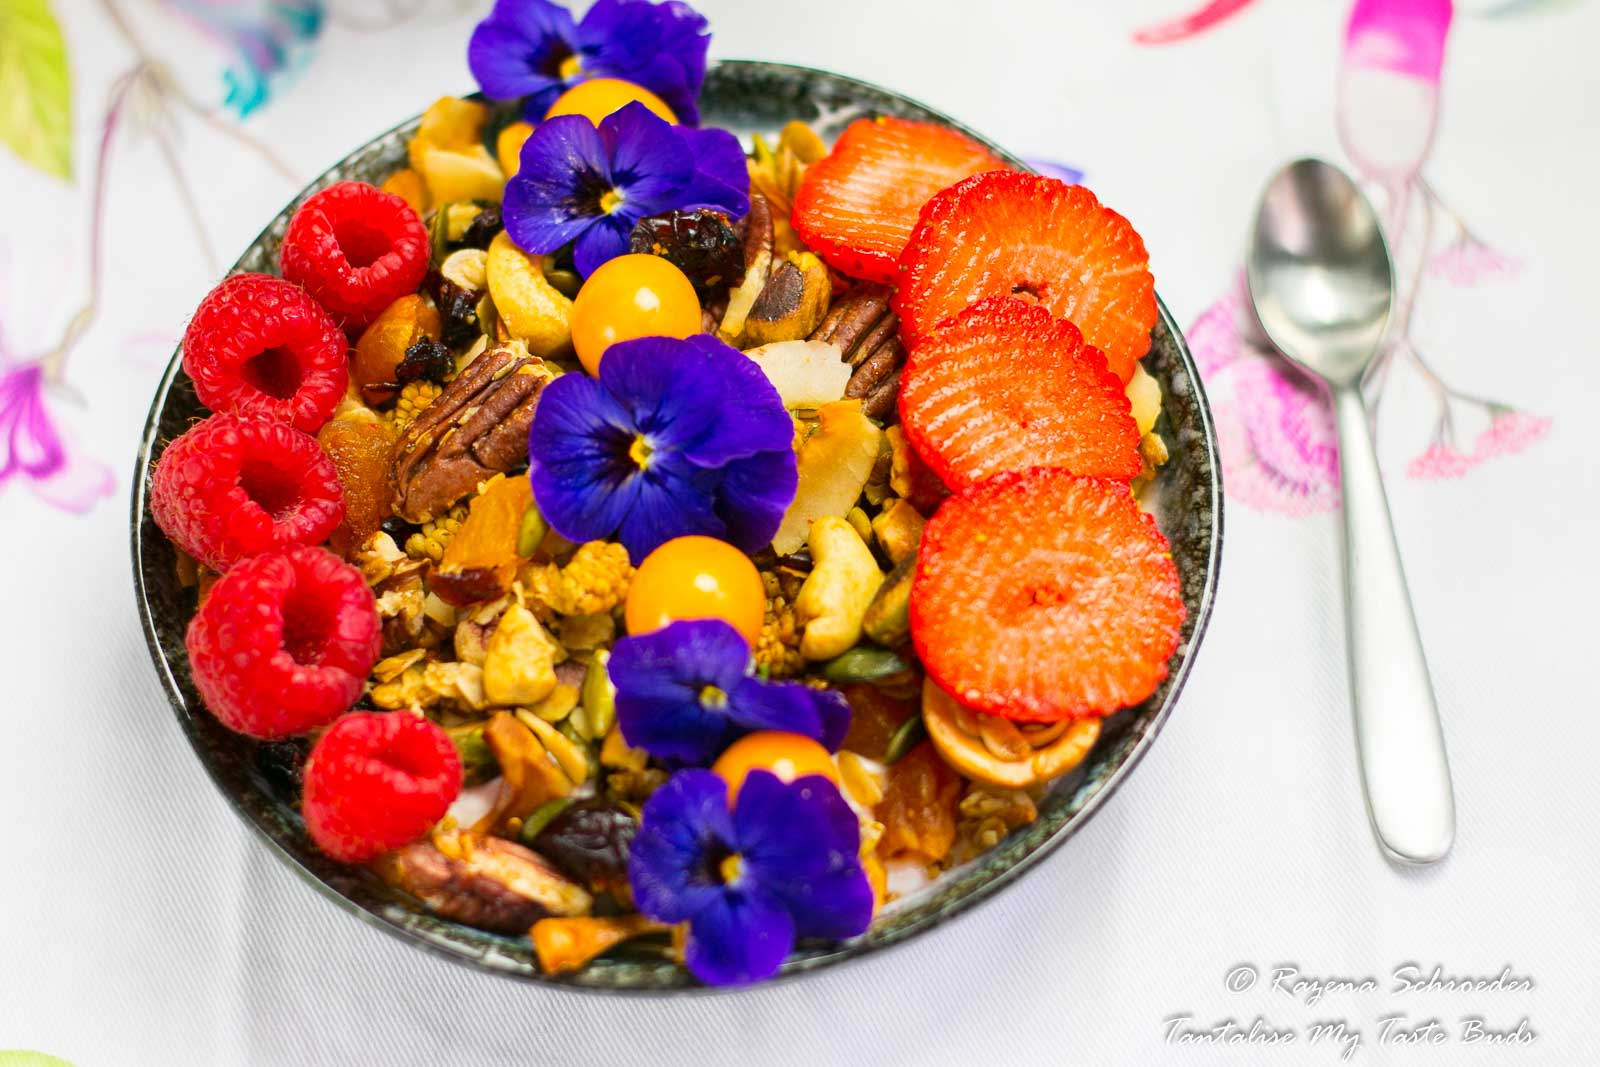 Suhoor Ramadhan traditions - Greek yogurt and granola breakfast bowl